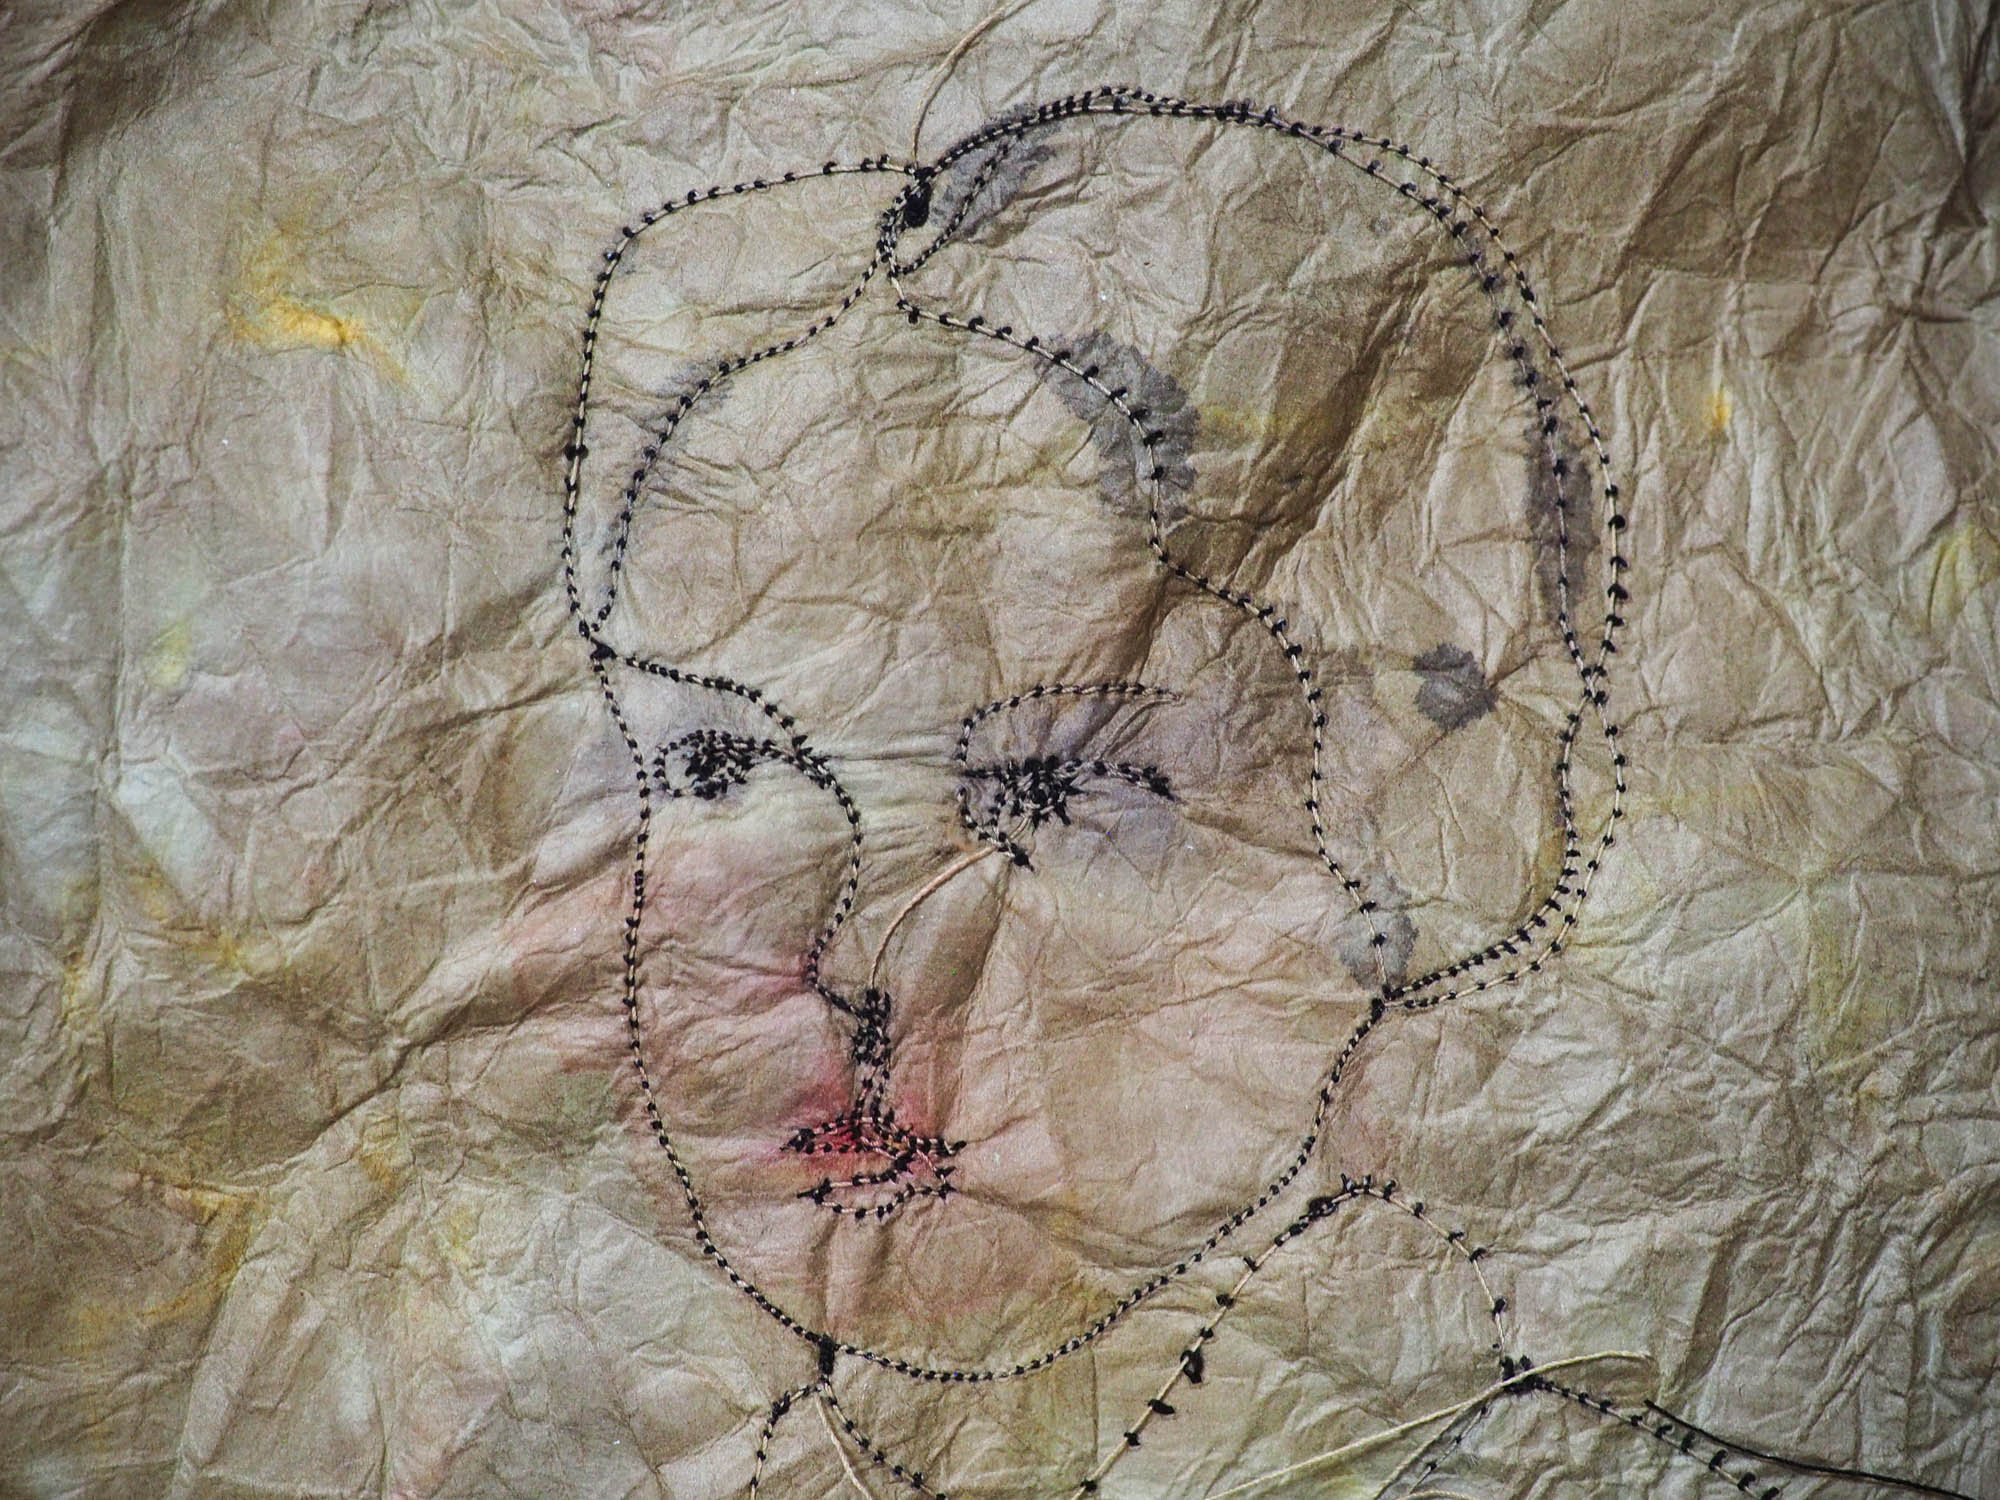 An original mixed media textile art female vintage portrait by Danita Art. Fabric paper, thread, acrylics, watercolor and inks mix to create a beautiful textile mixed media frameable work of art.